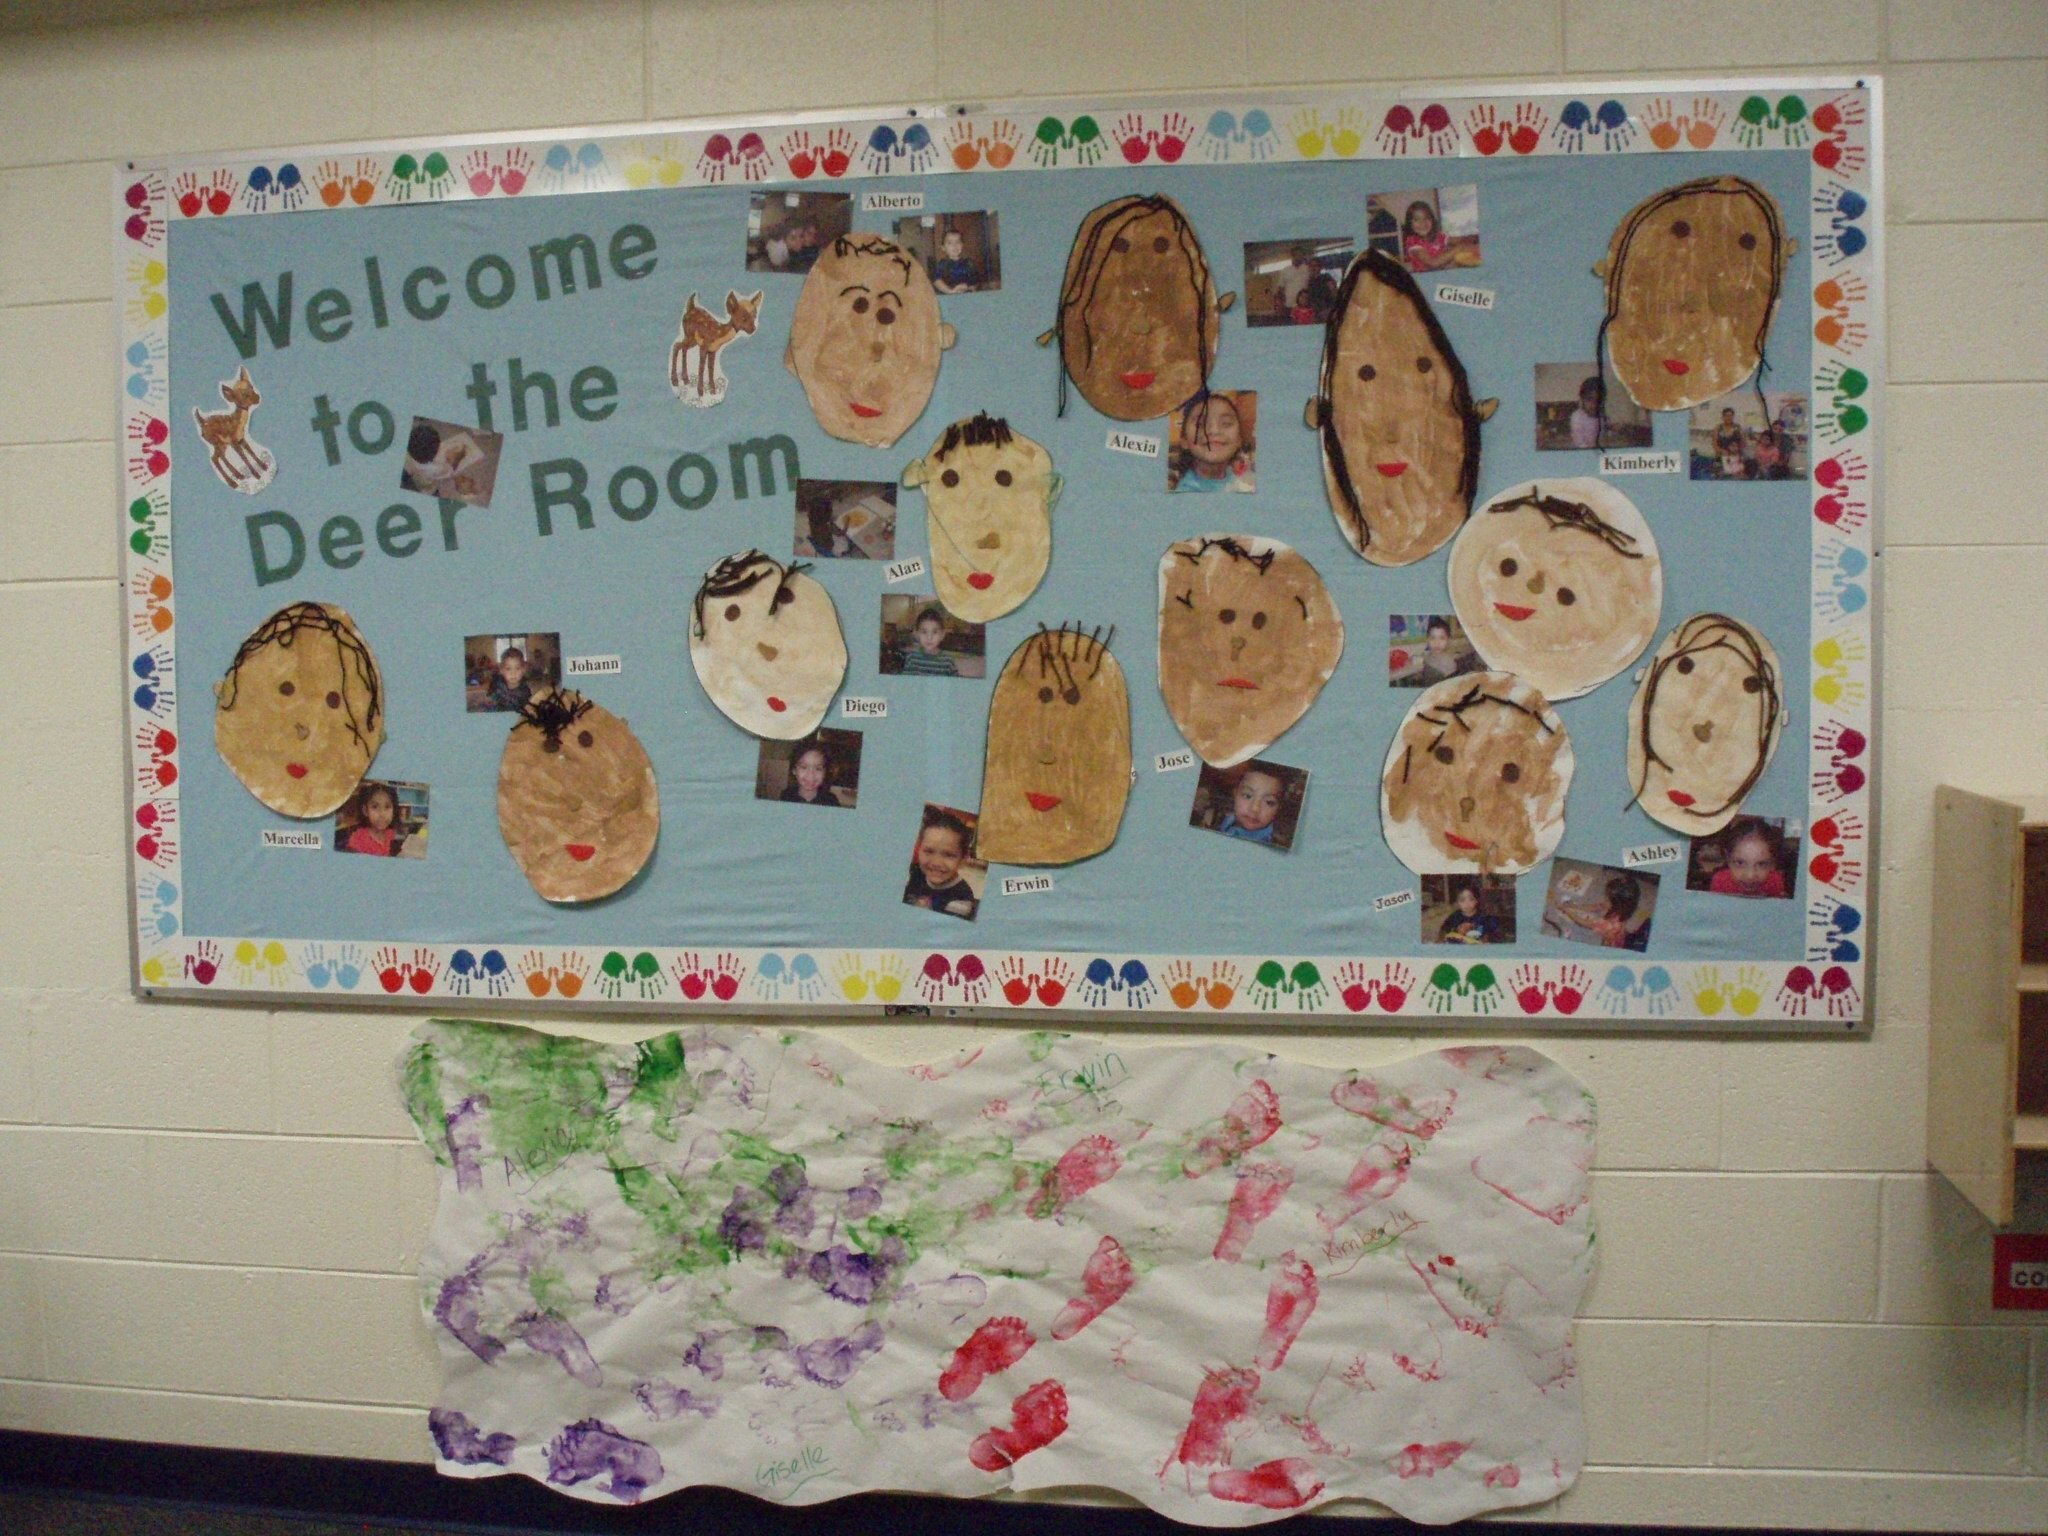 Multicultural Paint Activity And Bulletin Board Display